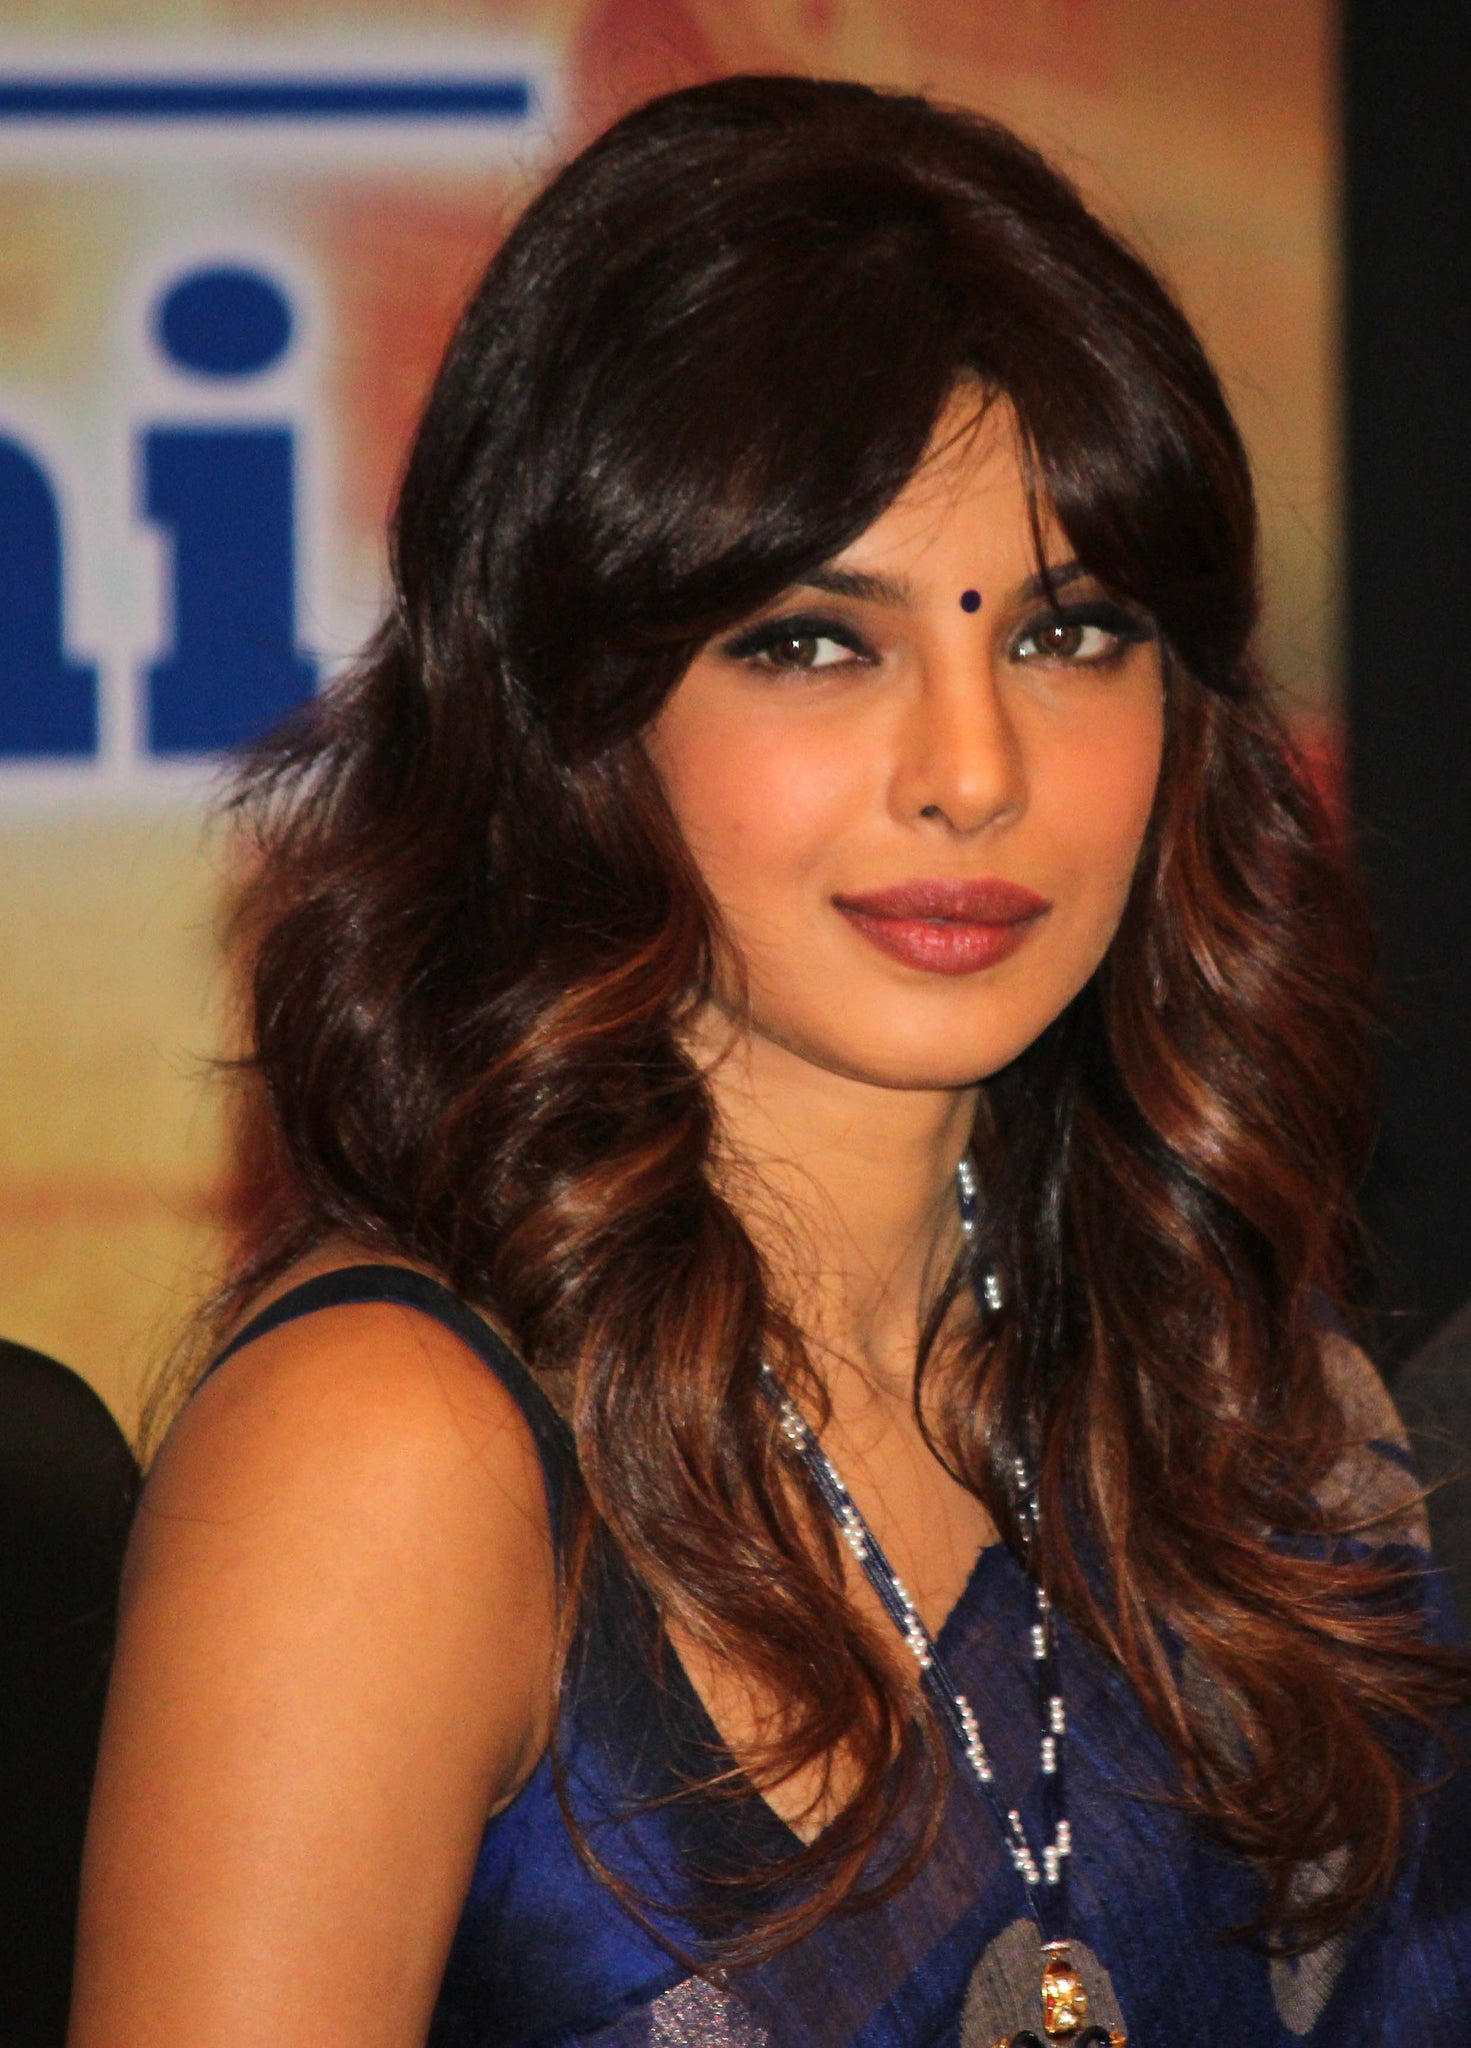 Priyanka-Chopra-in-Saree